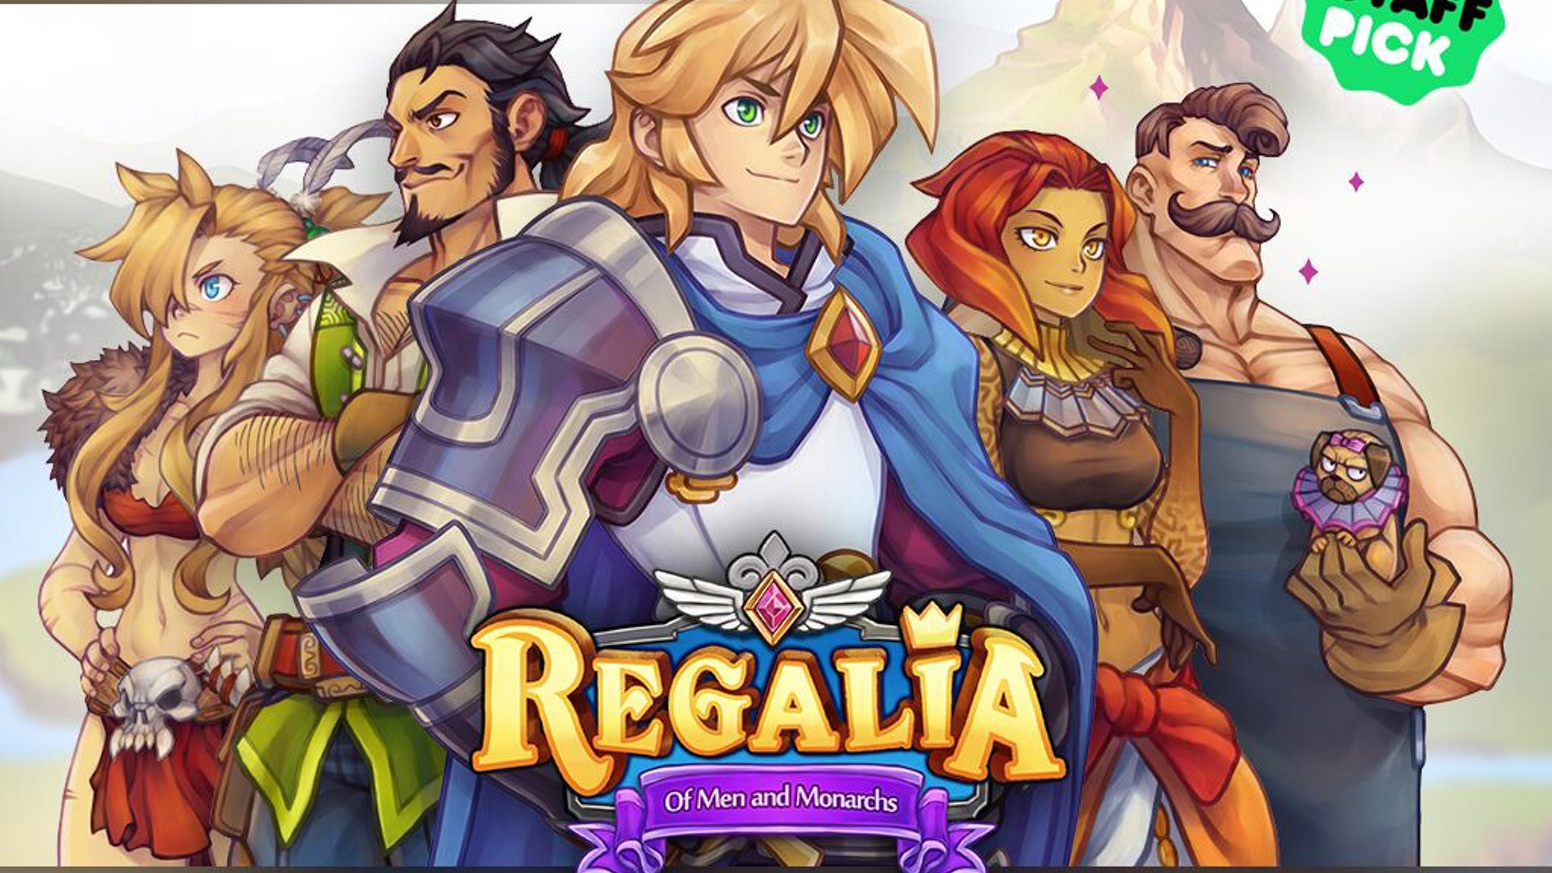 A loving homage to classic JRPGs. Tactical battles mixed with rich story, social links, pleasant visuals and a fantastic soundtrack.